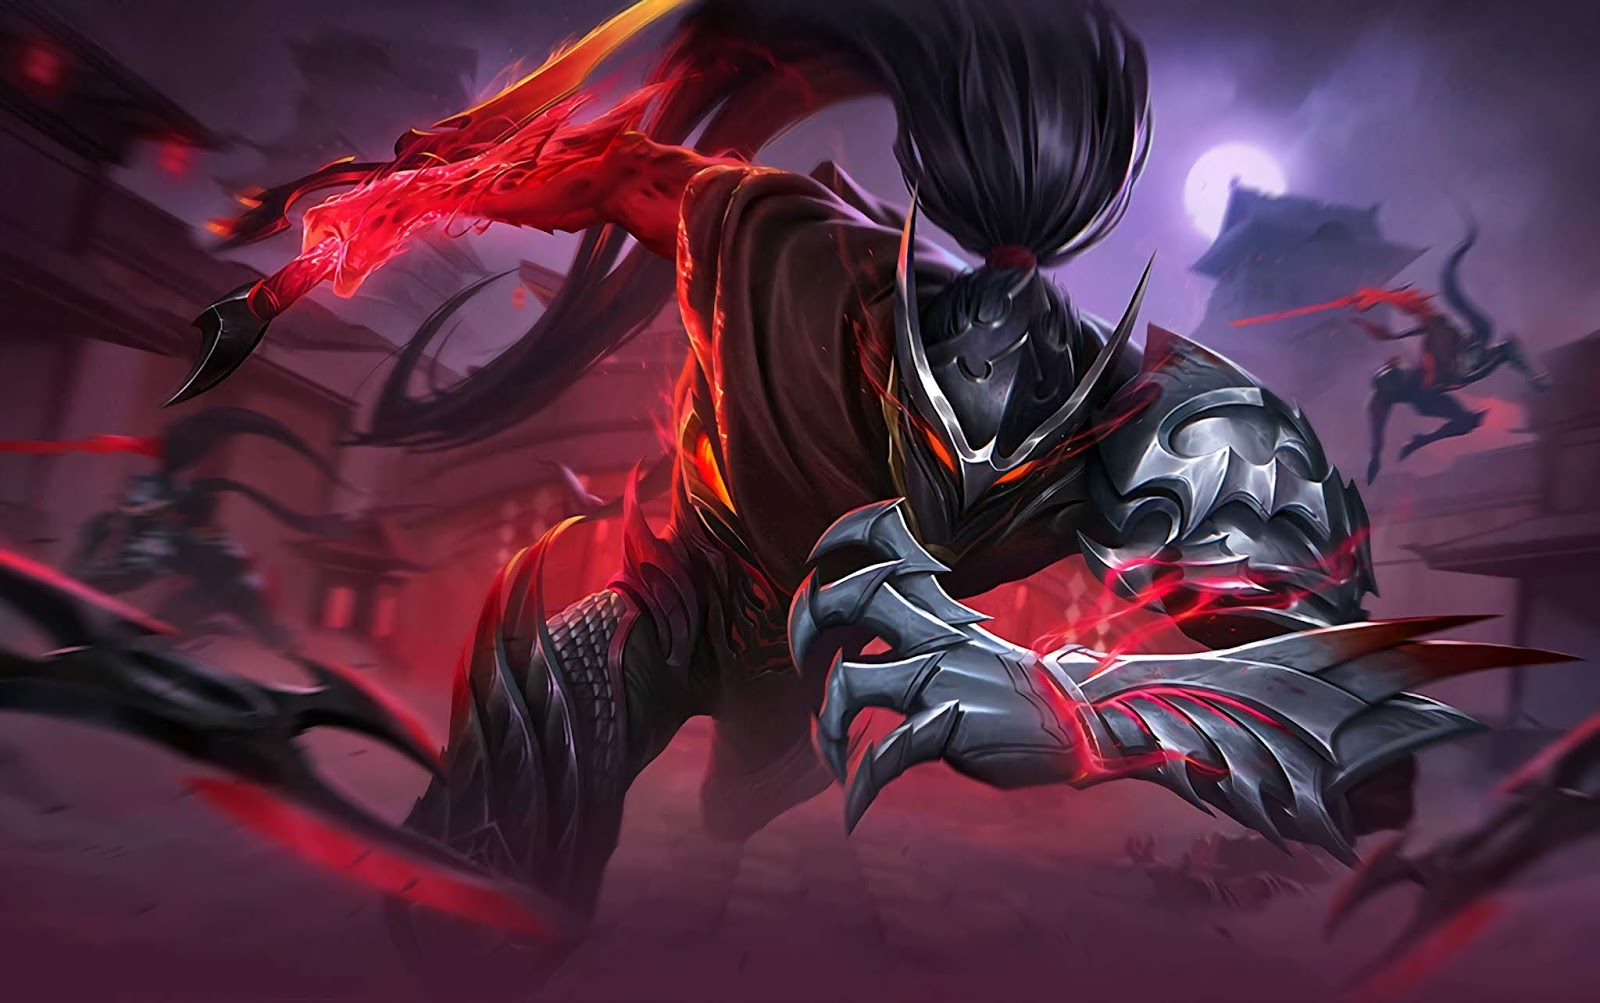 Wallpaper Hayabusa Shadow of Obscurity Skin Mobile Legends HD for PC